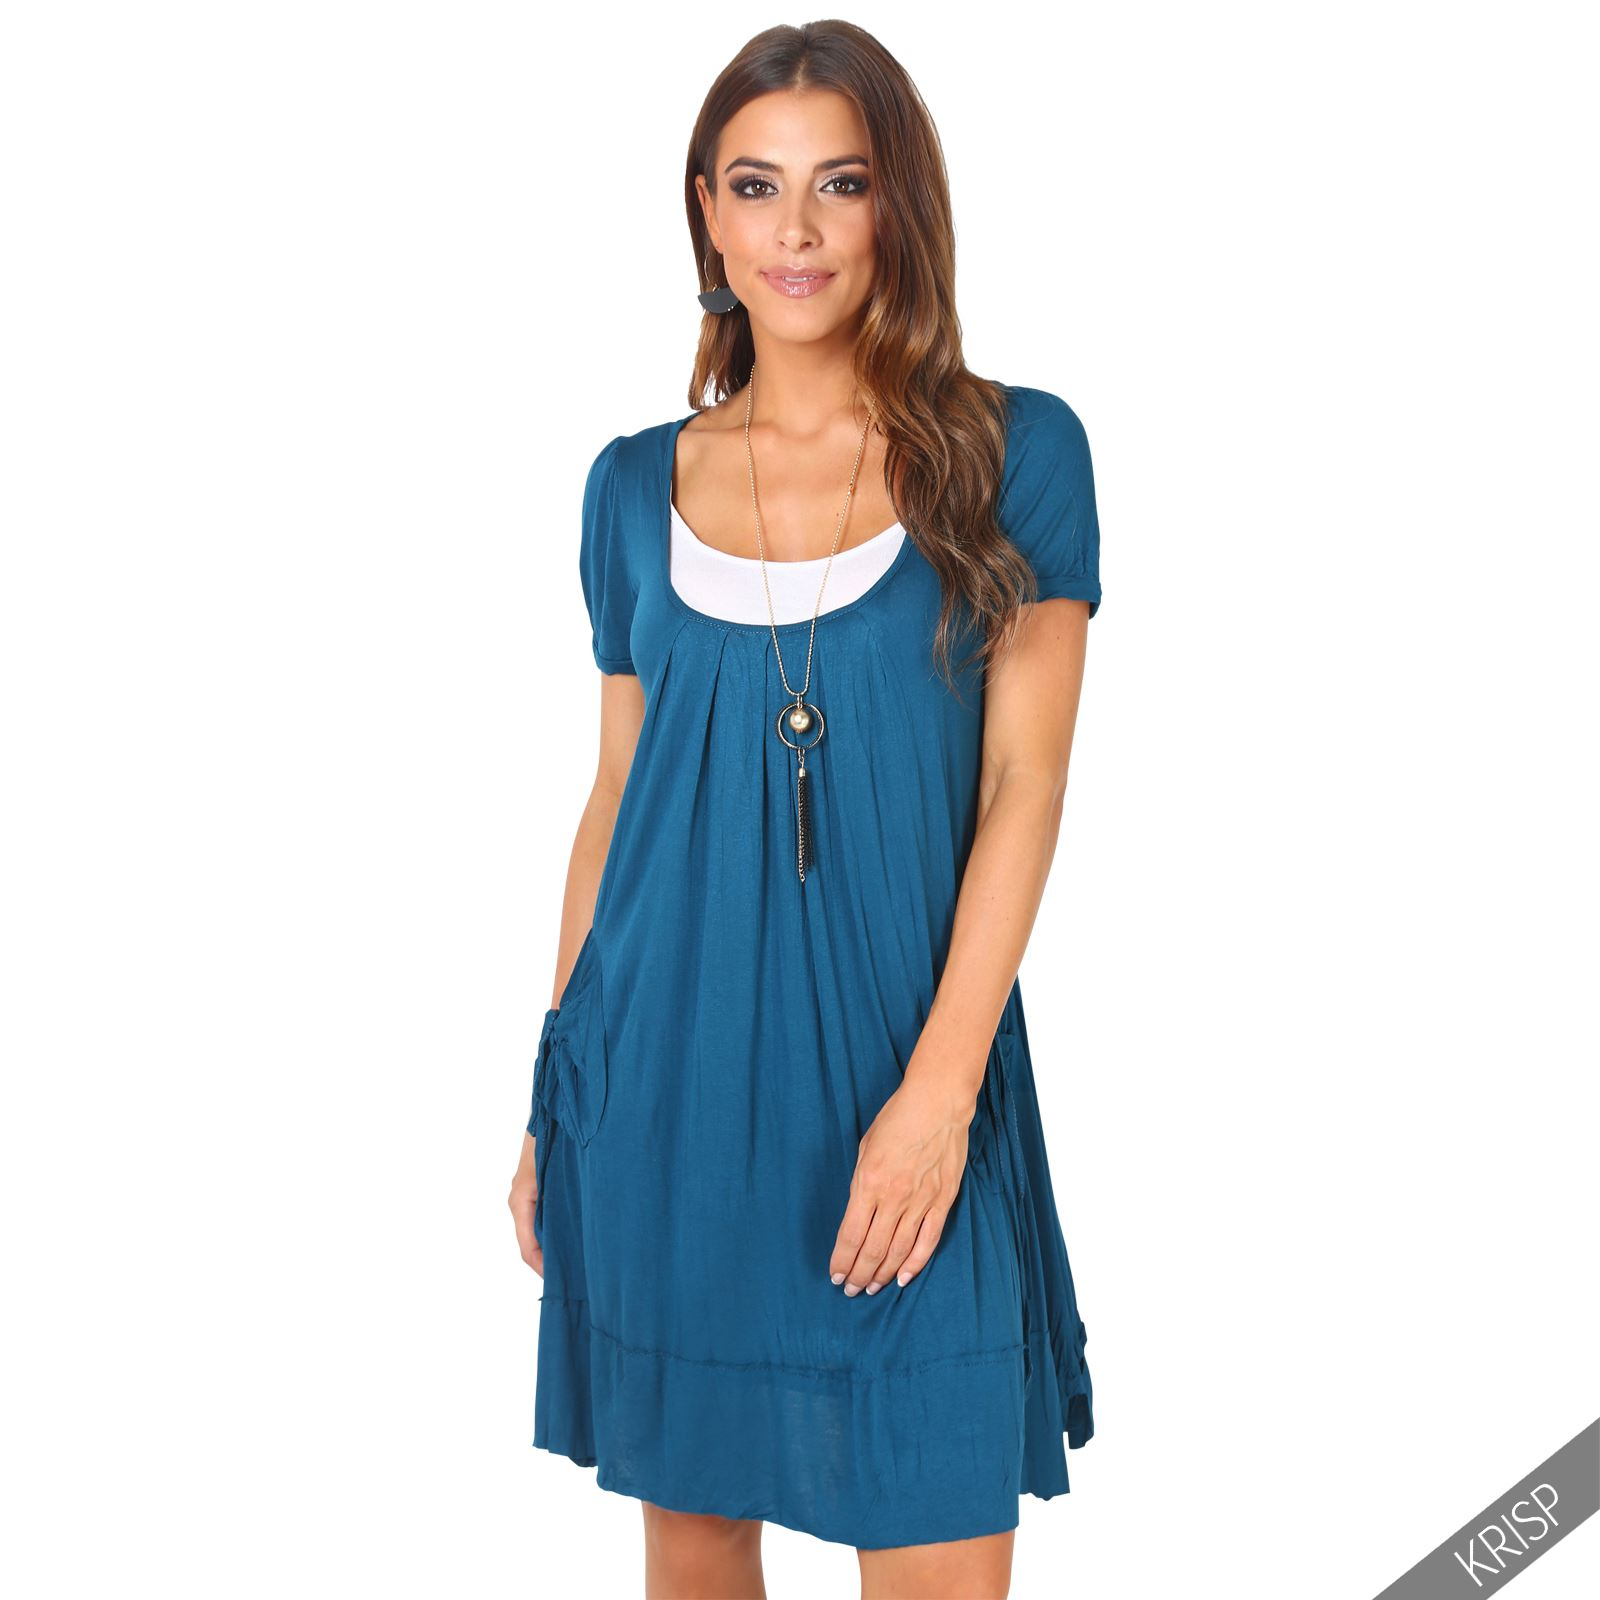 eacvuazs.ga: womens summer tunics. From The Community. tank top dress,Loose fit, tunic top dress, long Tshirt, swing PrinStory Women's Short Sleeve Casual Cold Shoulder Tunic Tops Loose Blouse Shirts. by PrinStory. $ - $ $ 12 $ 17 99 Prime. FREE Shipping on eligible orders.